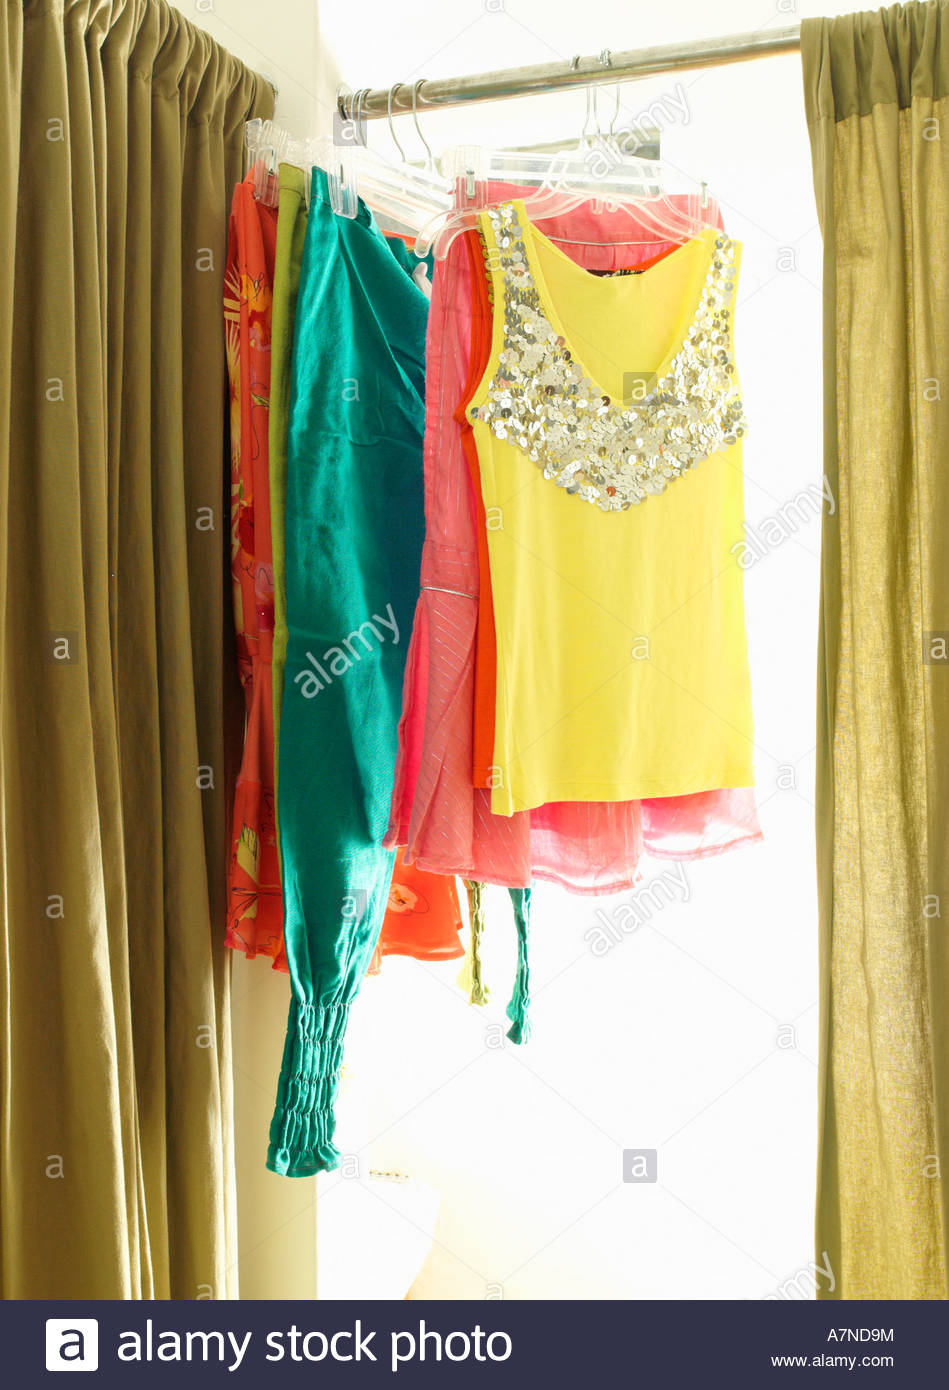 Colourful new clothes hanging from rail in clothes shop fitting room - Stock Image